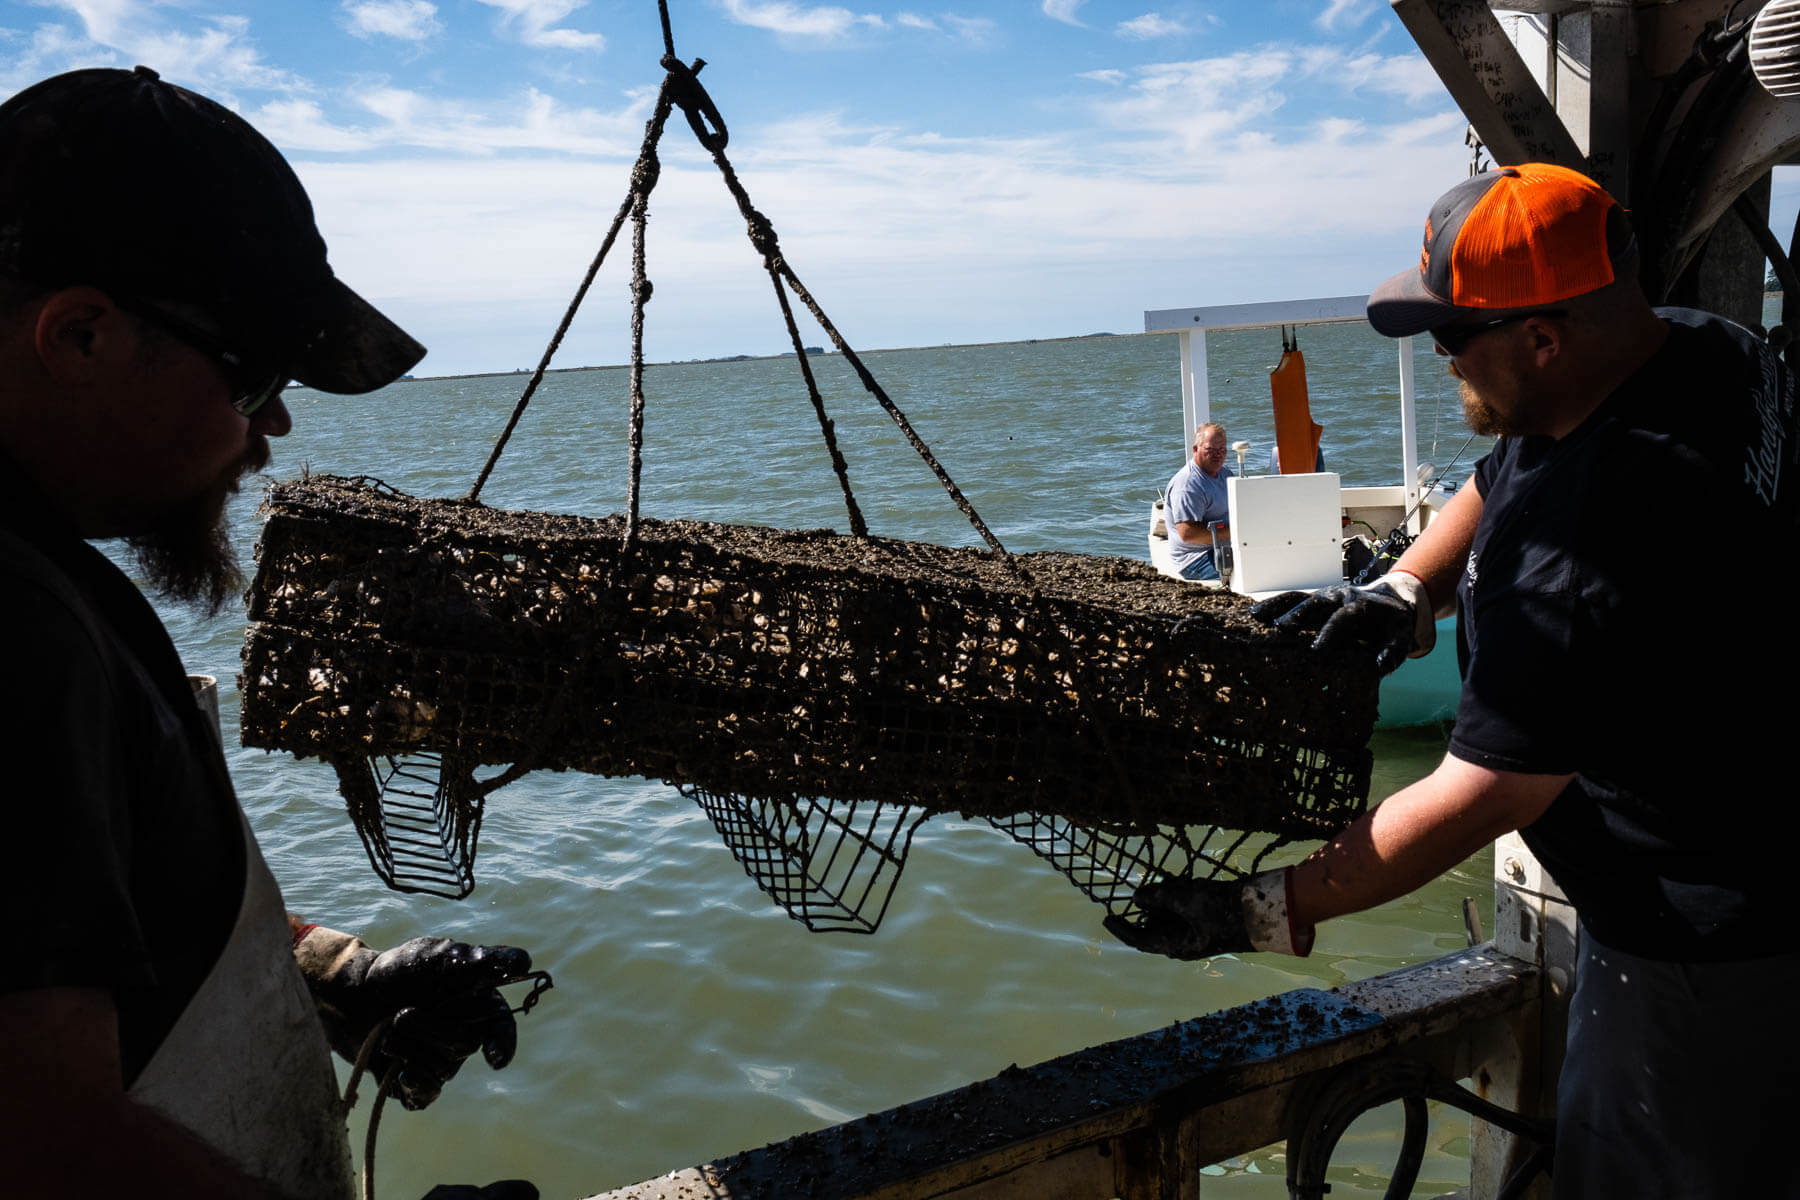 Two oyster farmers pull a bed of oyster from the water.